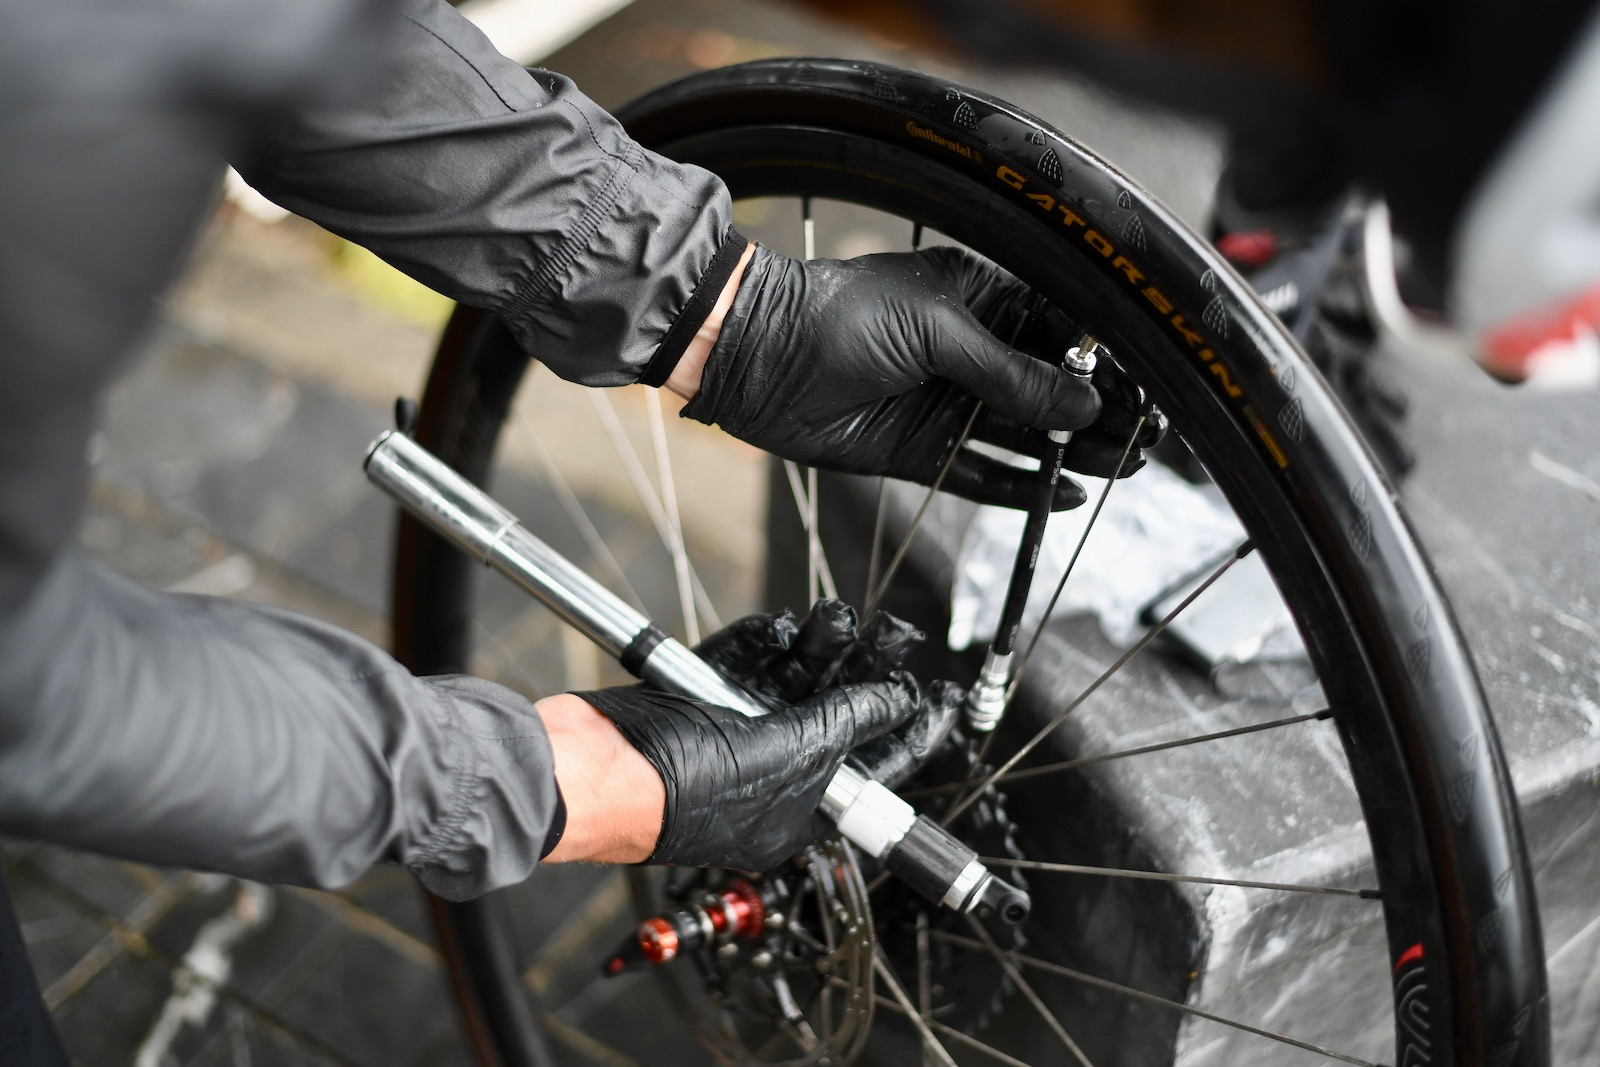 How to Prevent and Fix a Bike Tyre Puncture